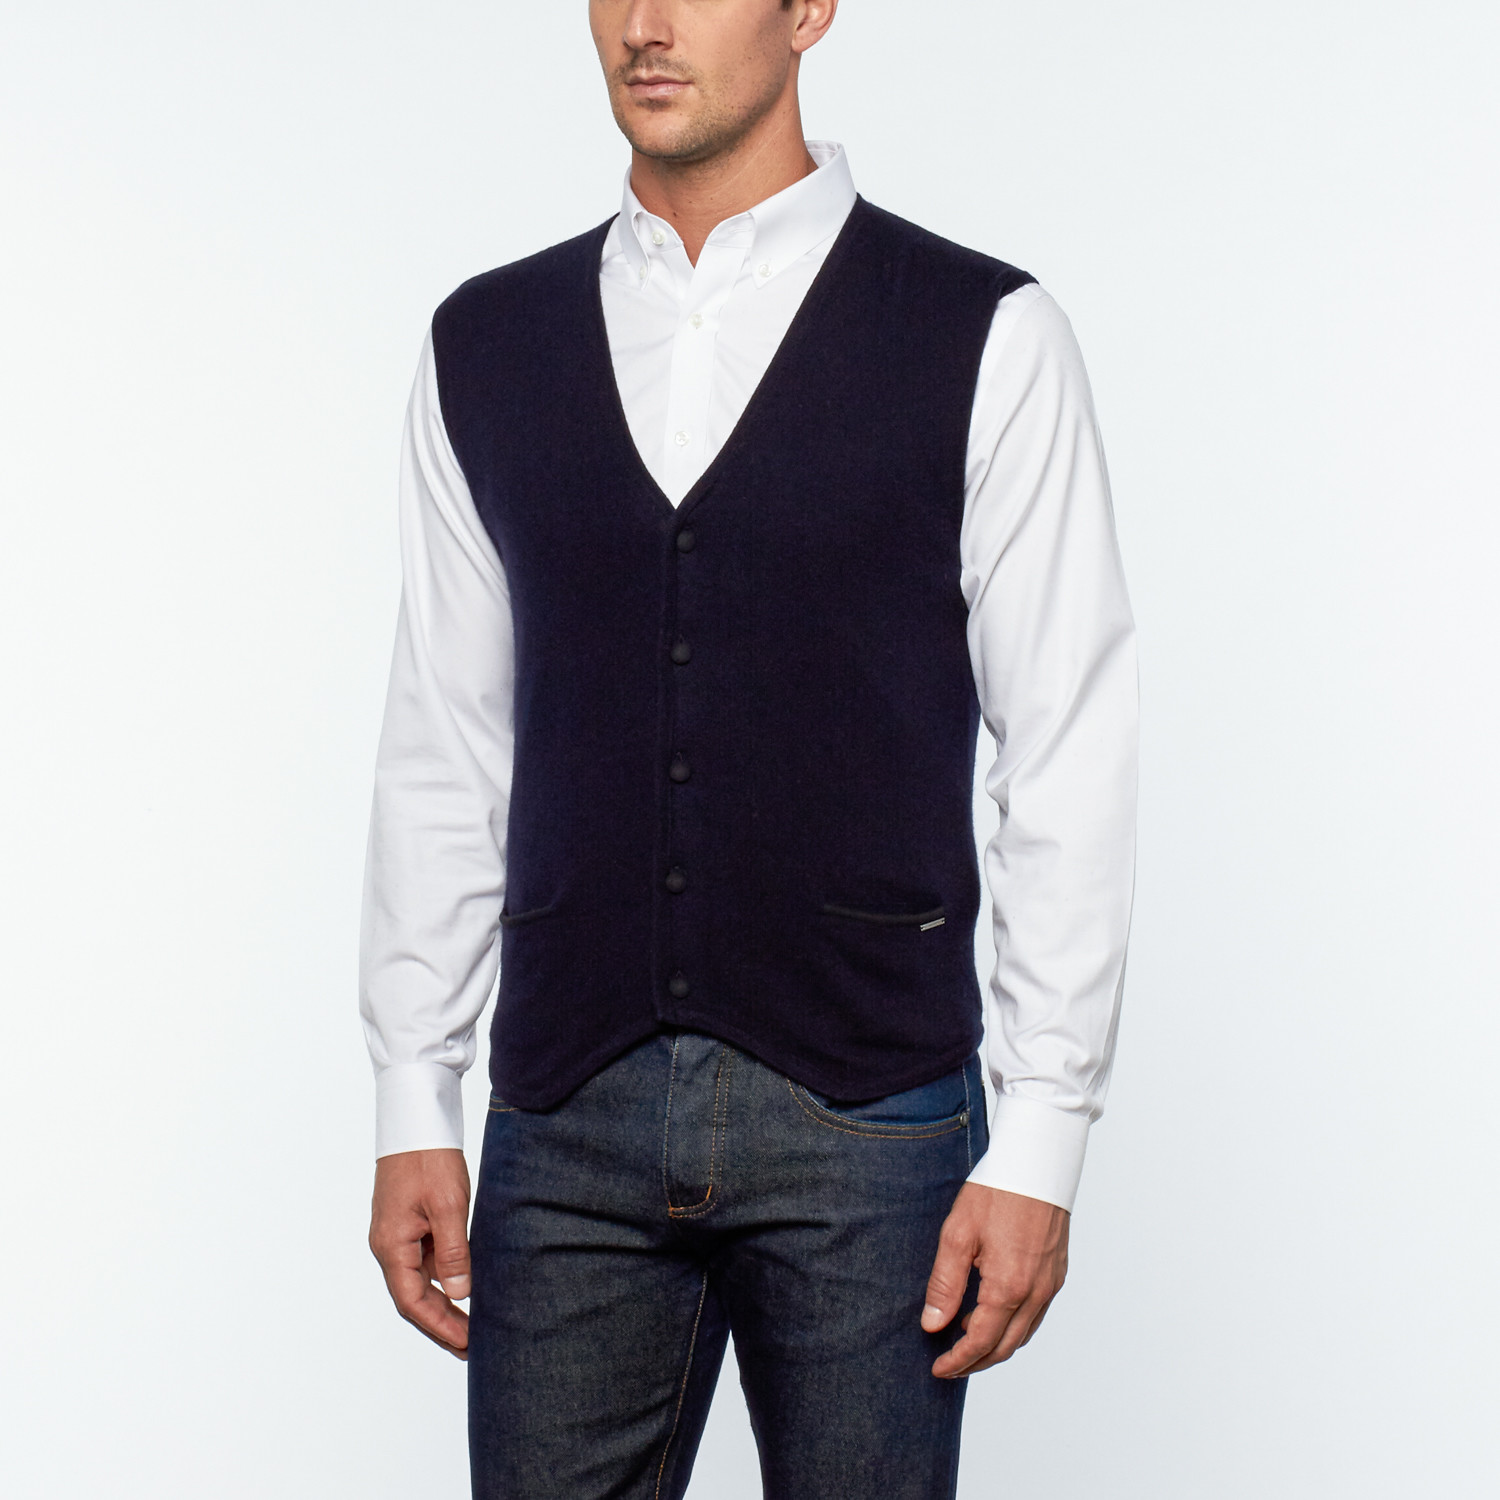 Valdes Cashmere Button-Up Sweater Vest // Navy Blue (L) - Silk and ...